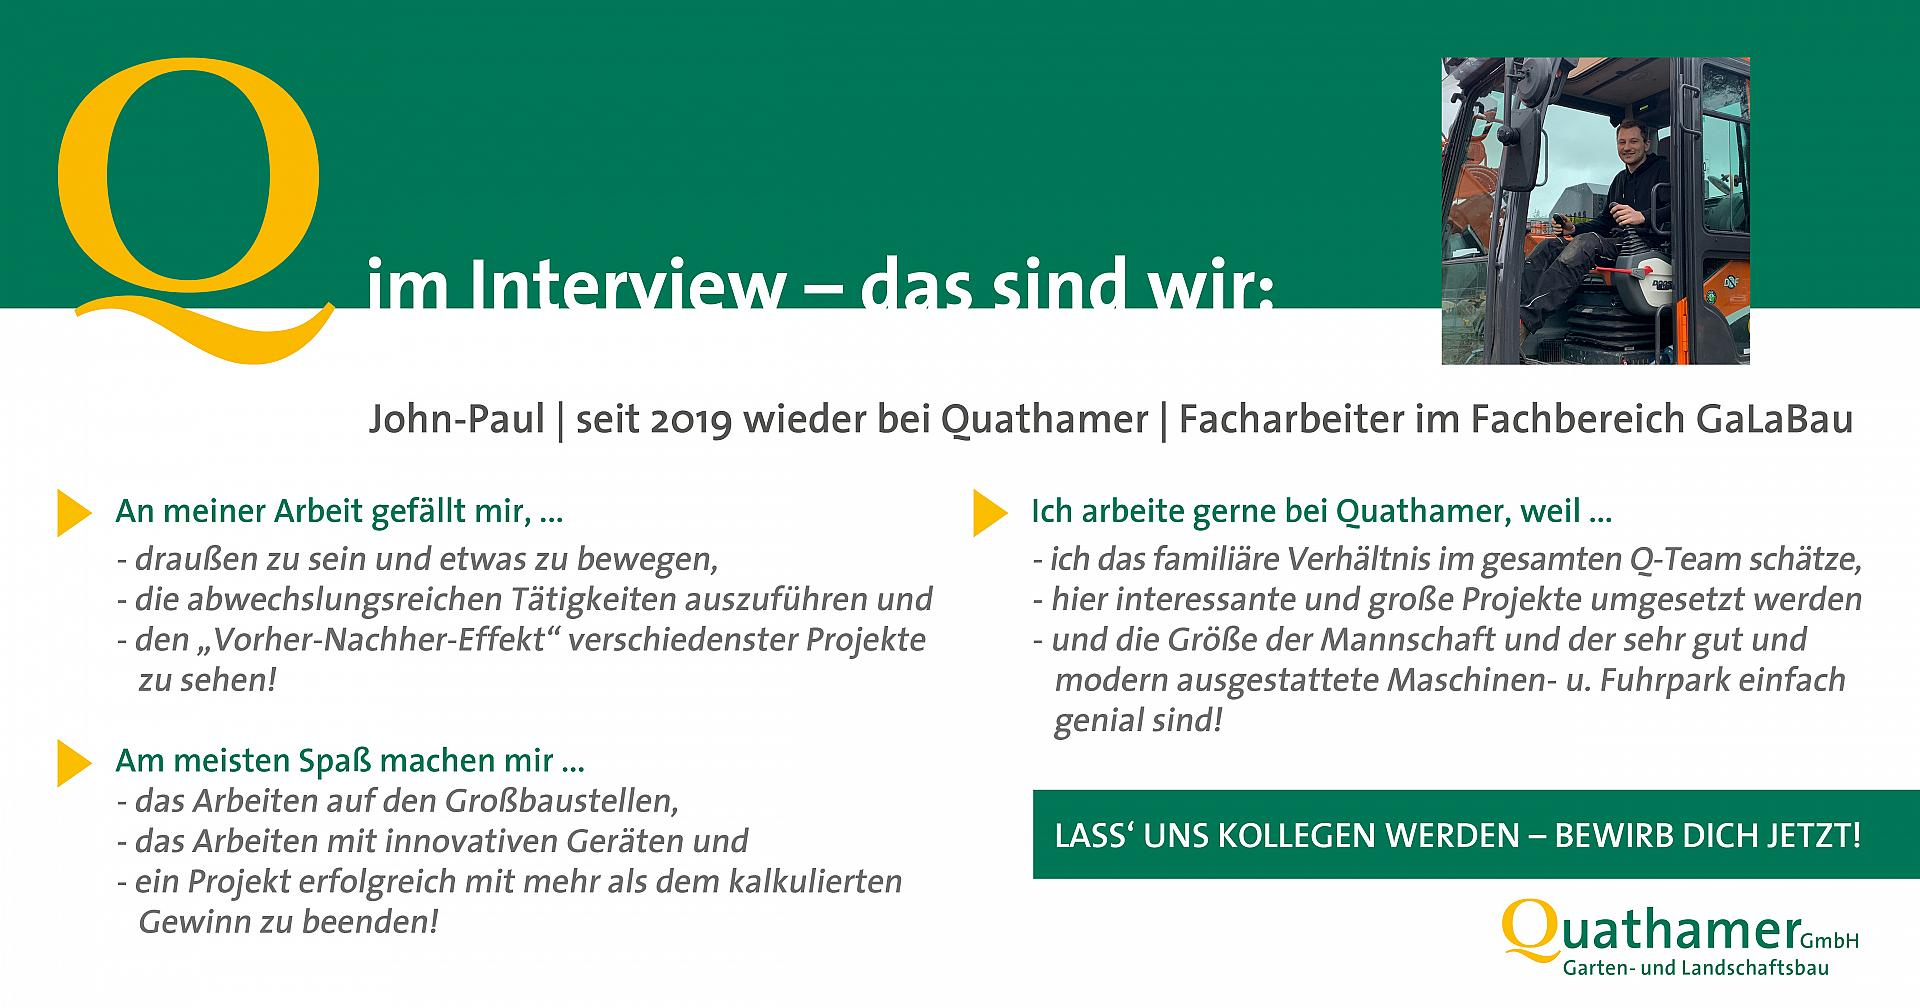 Interview mit John-Paul